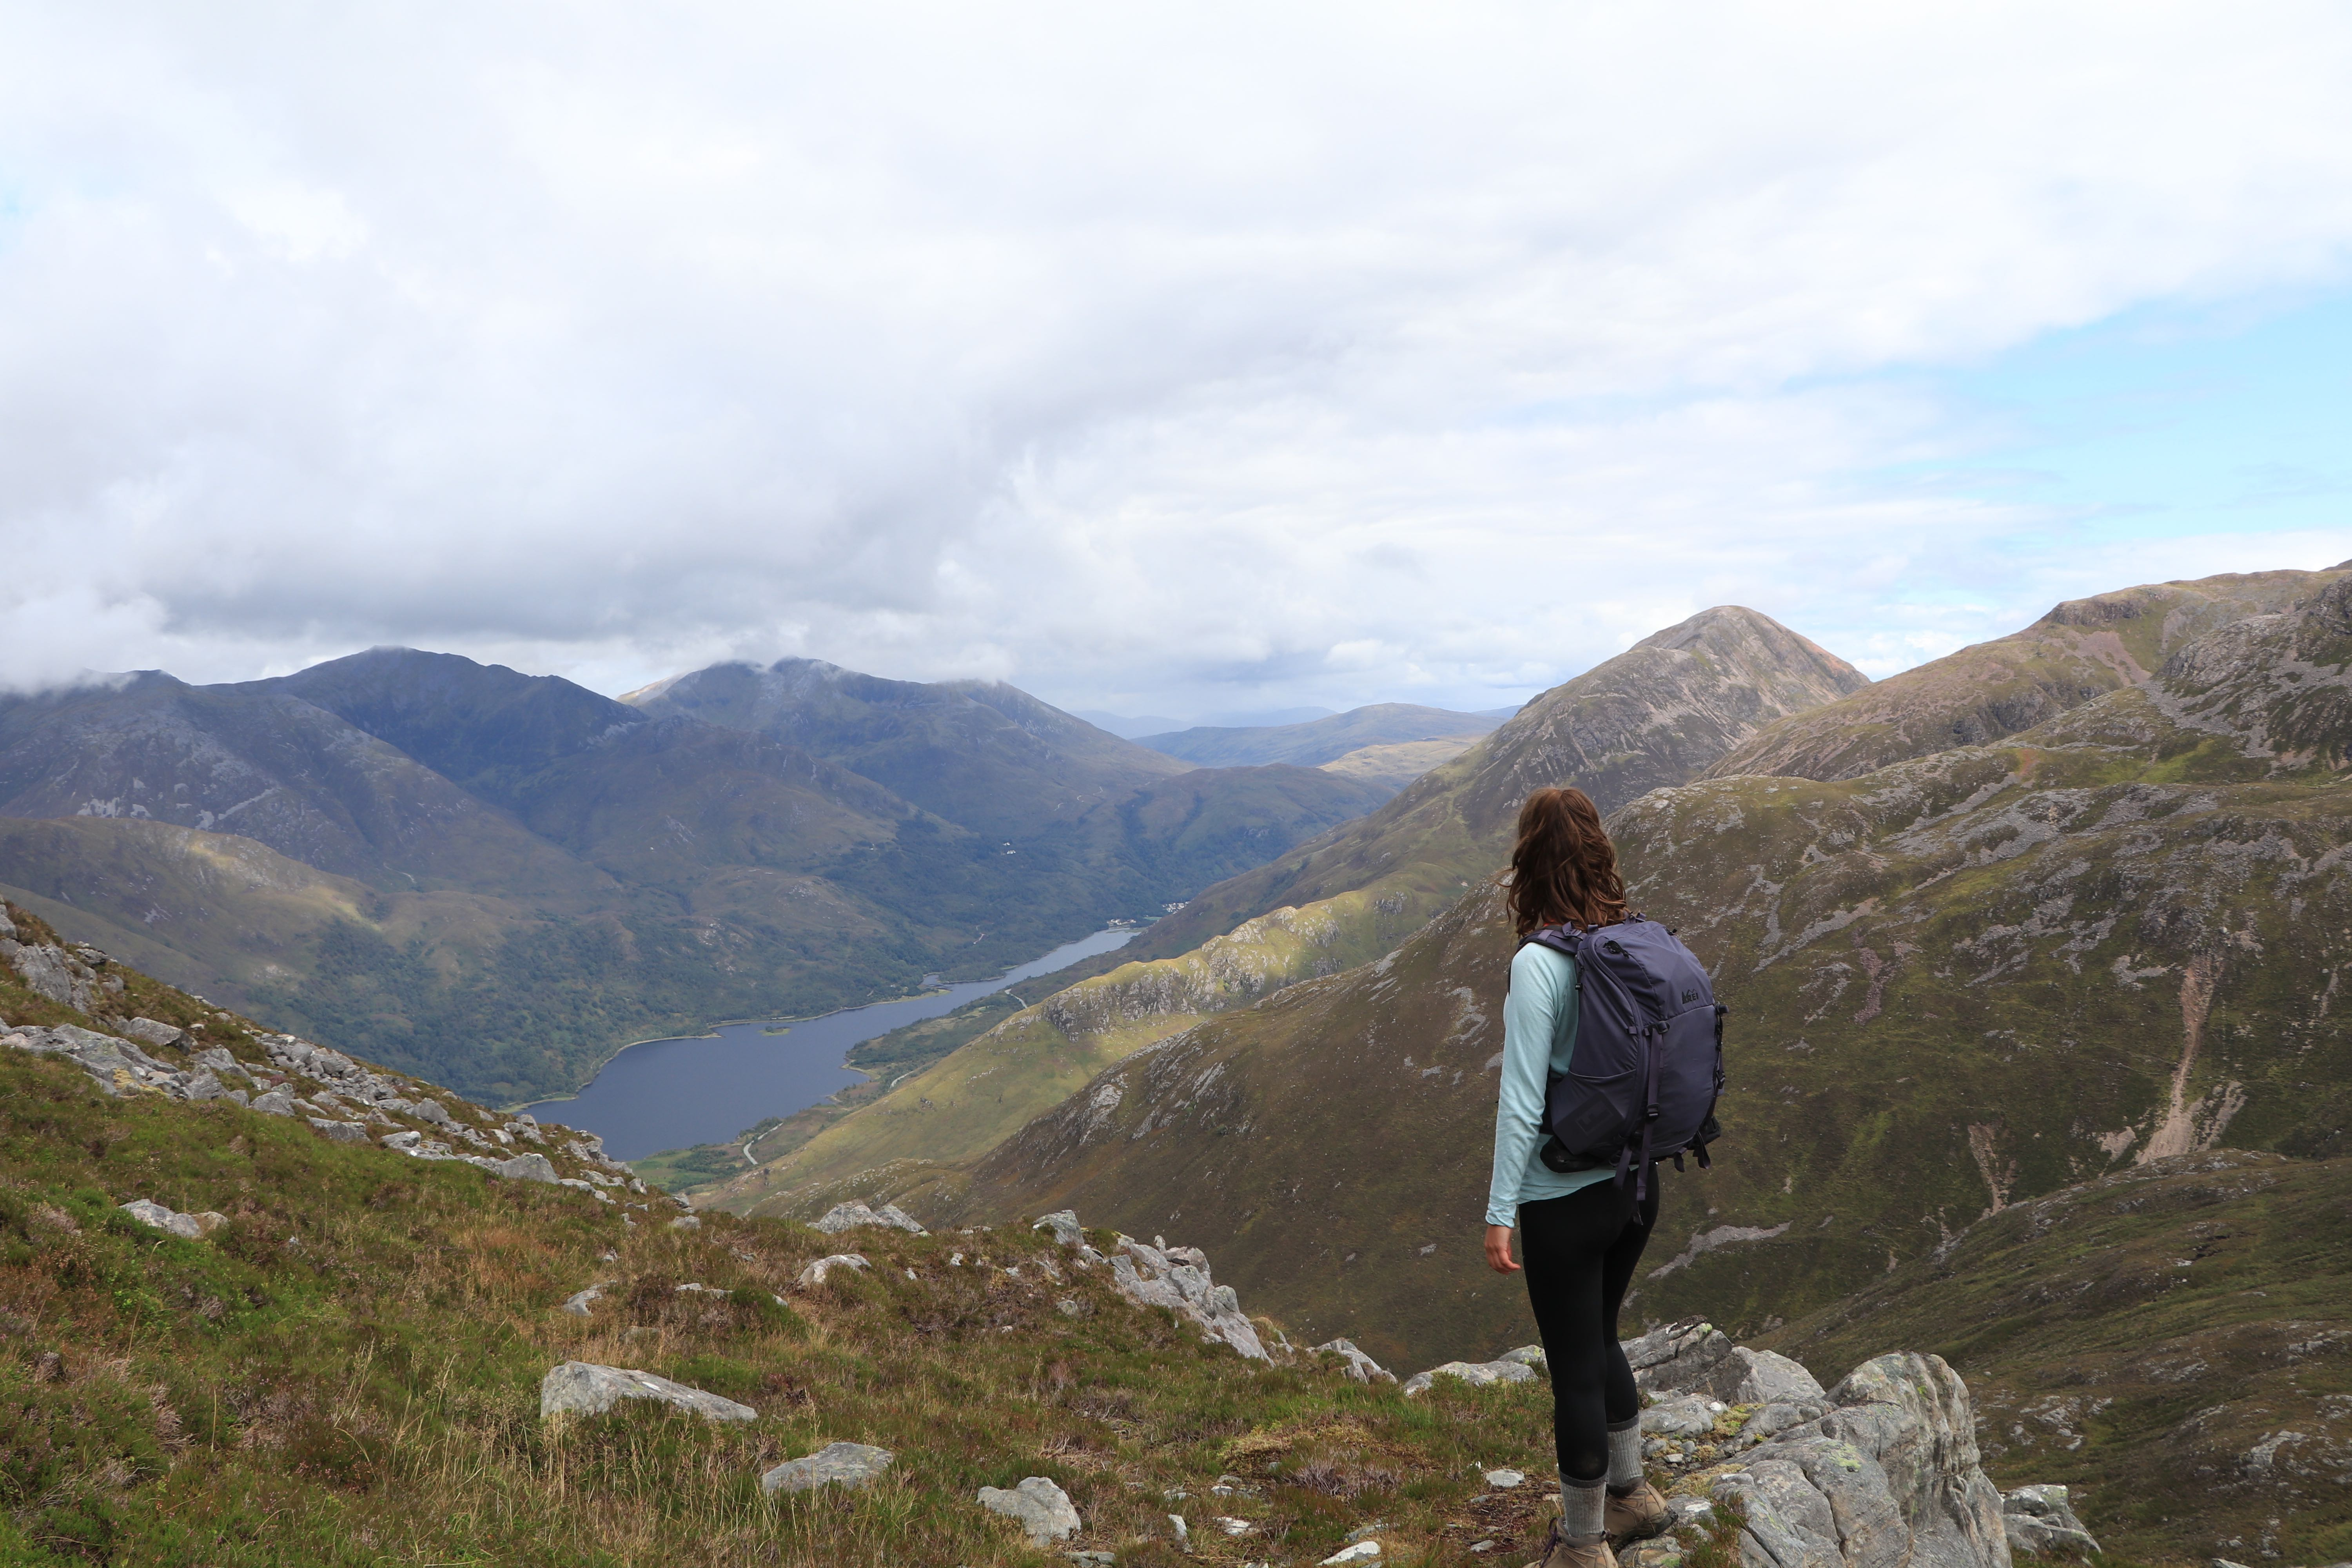 Me looking at Loch Leven on the Pap of Glencoe ECF